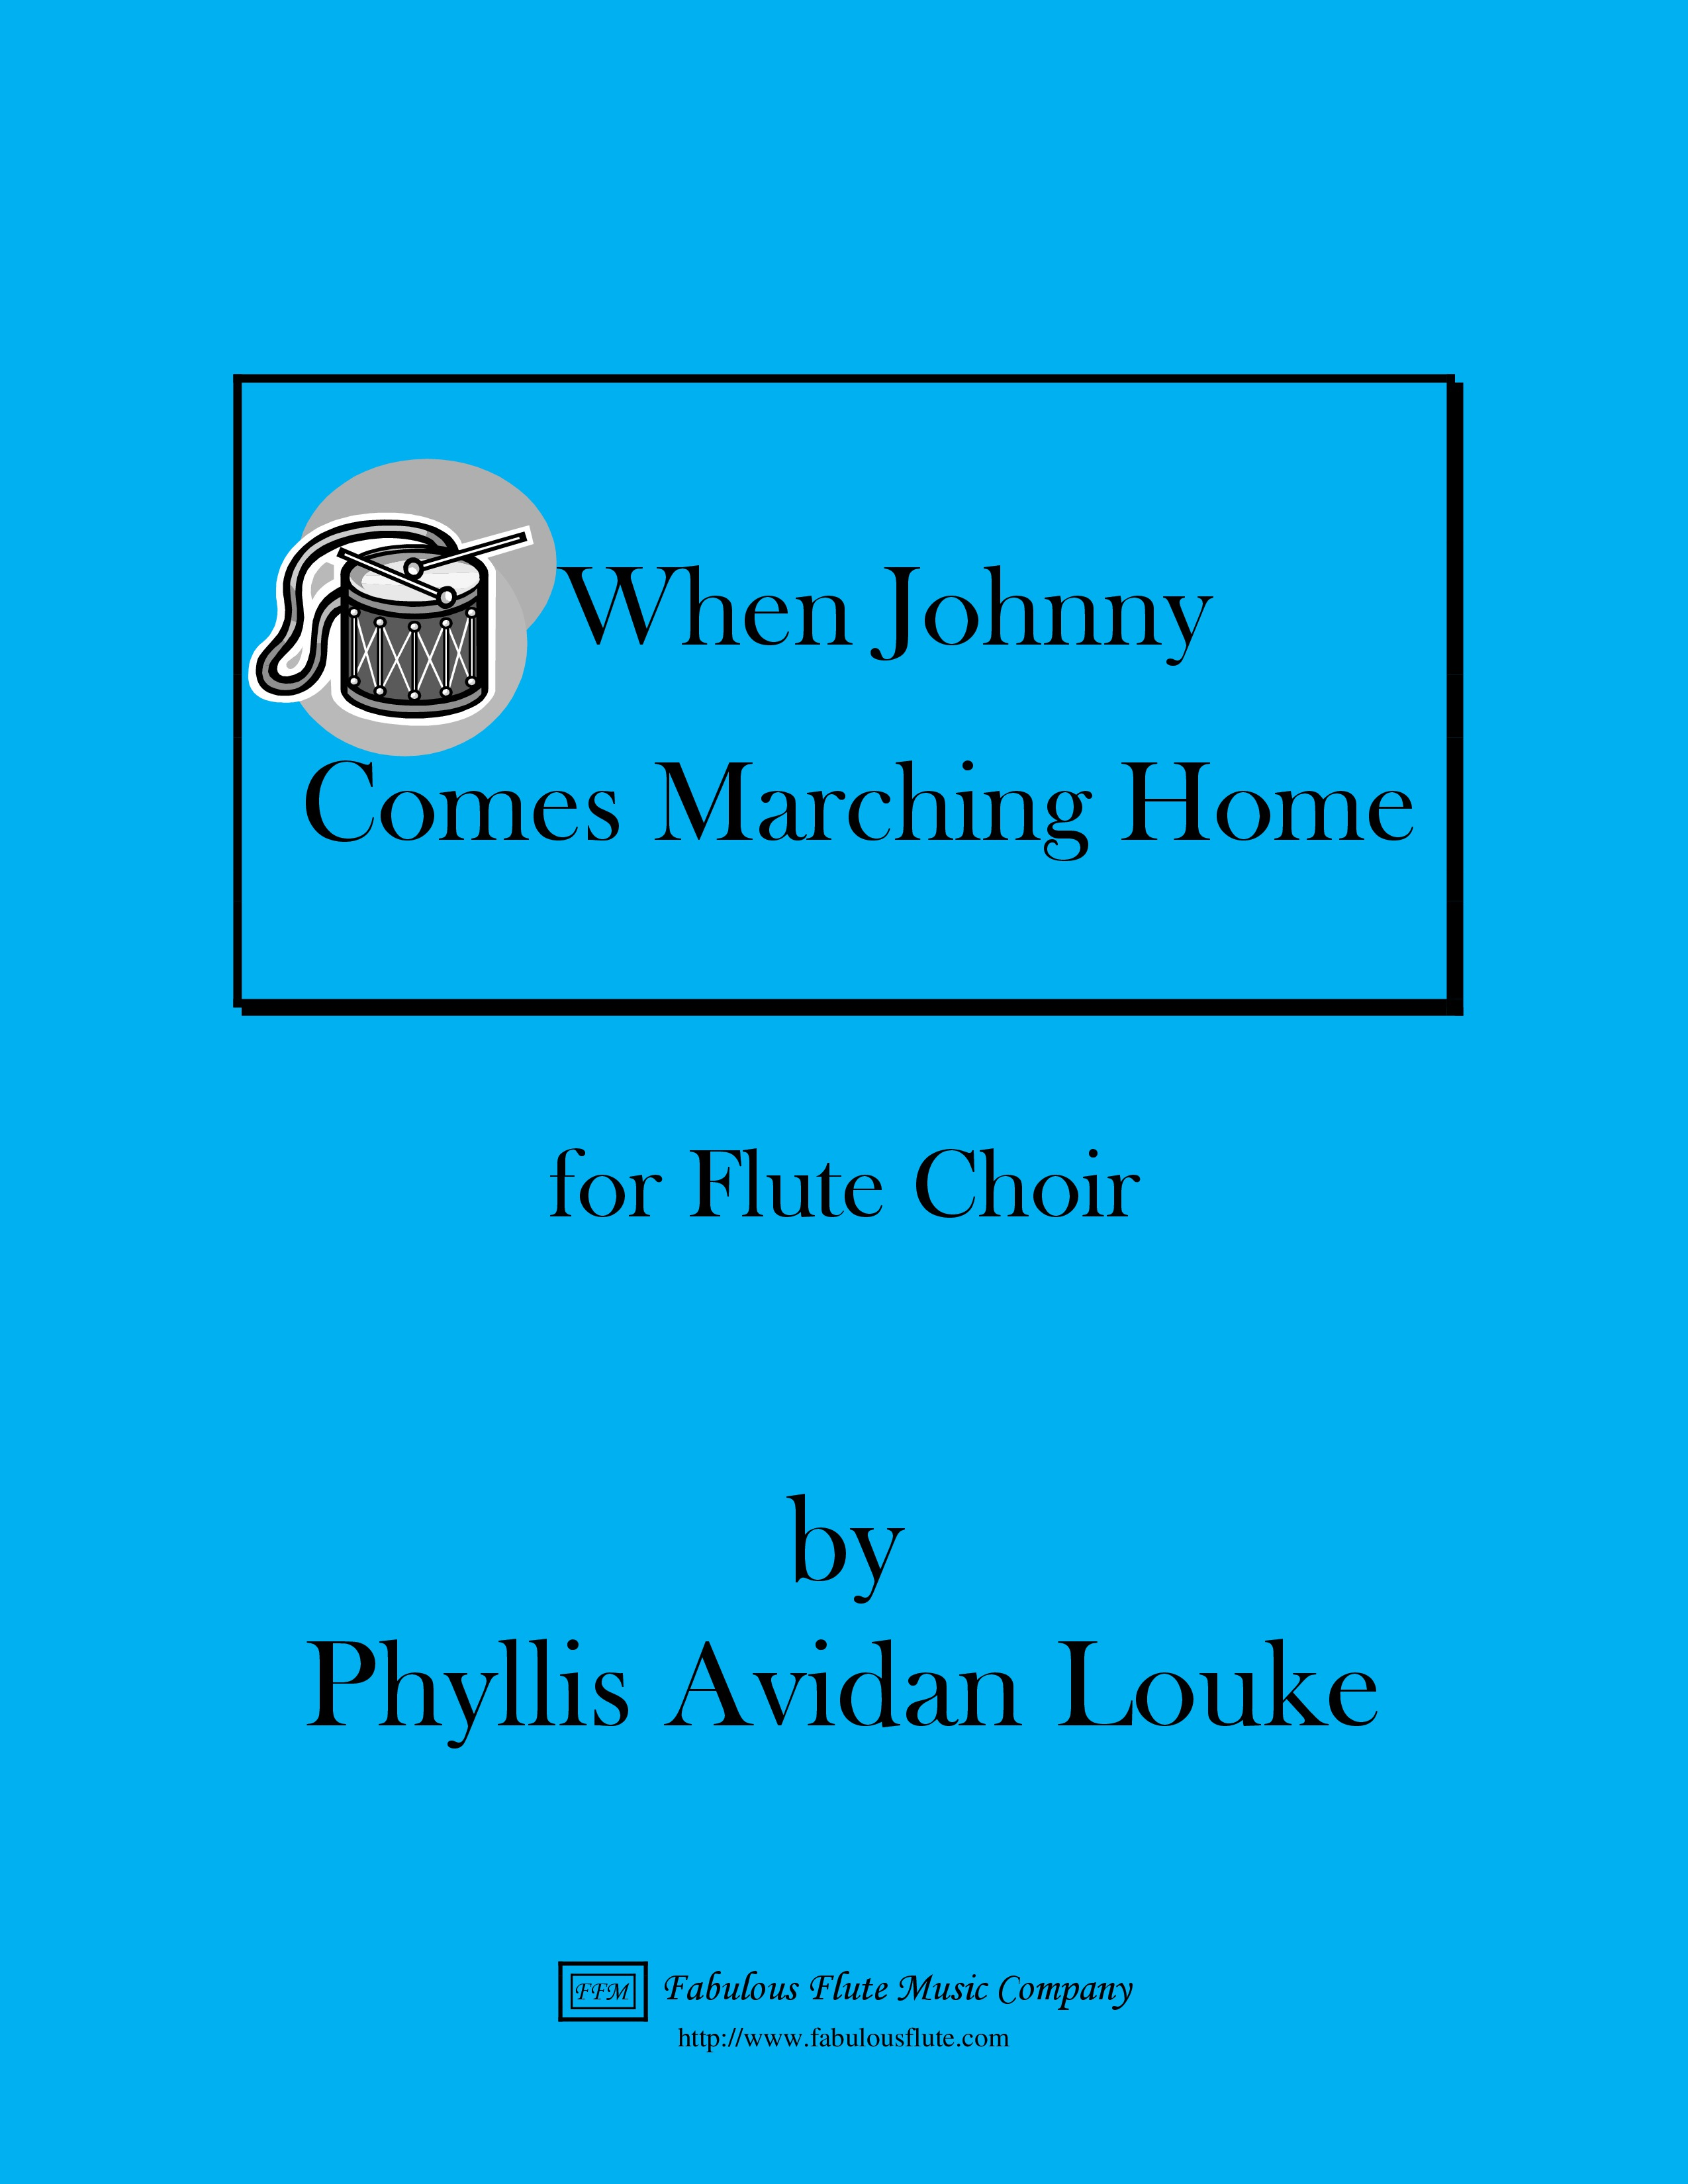 Program notes phyllis avidan louke when johnny comes marching home hexwebz Images